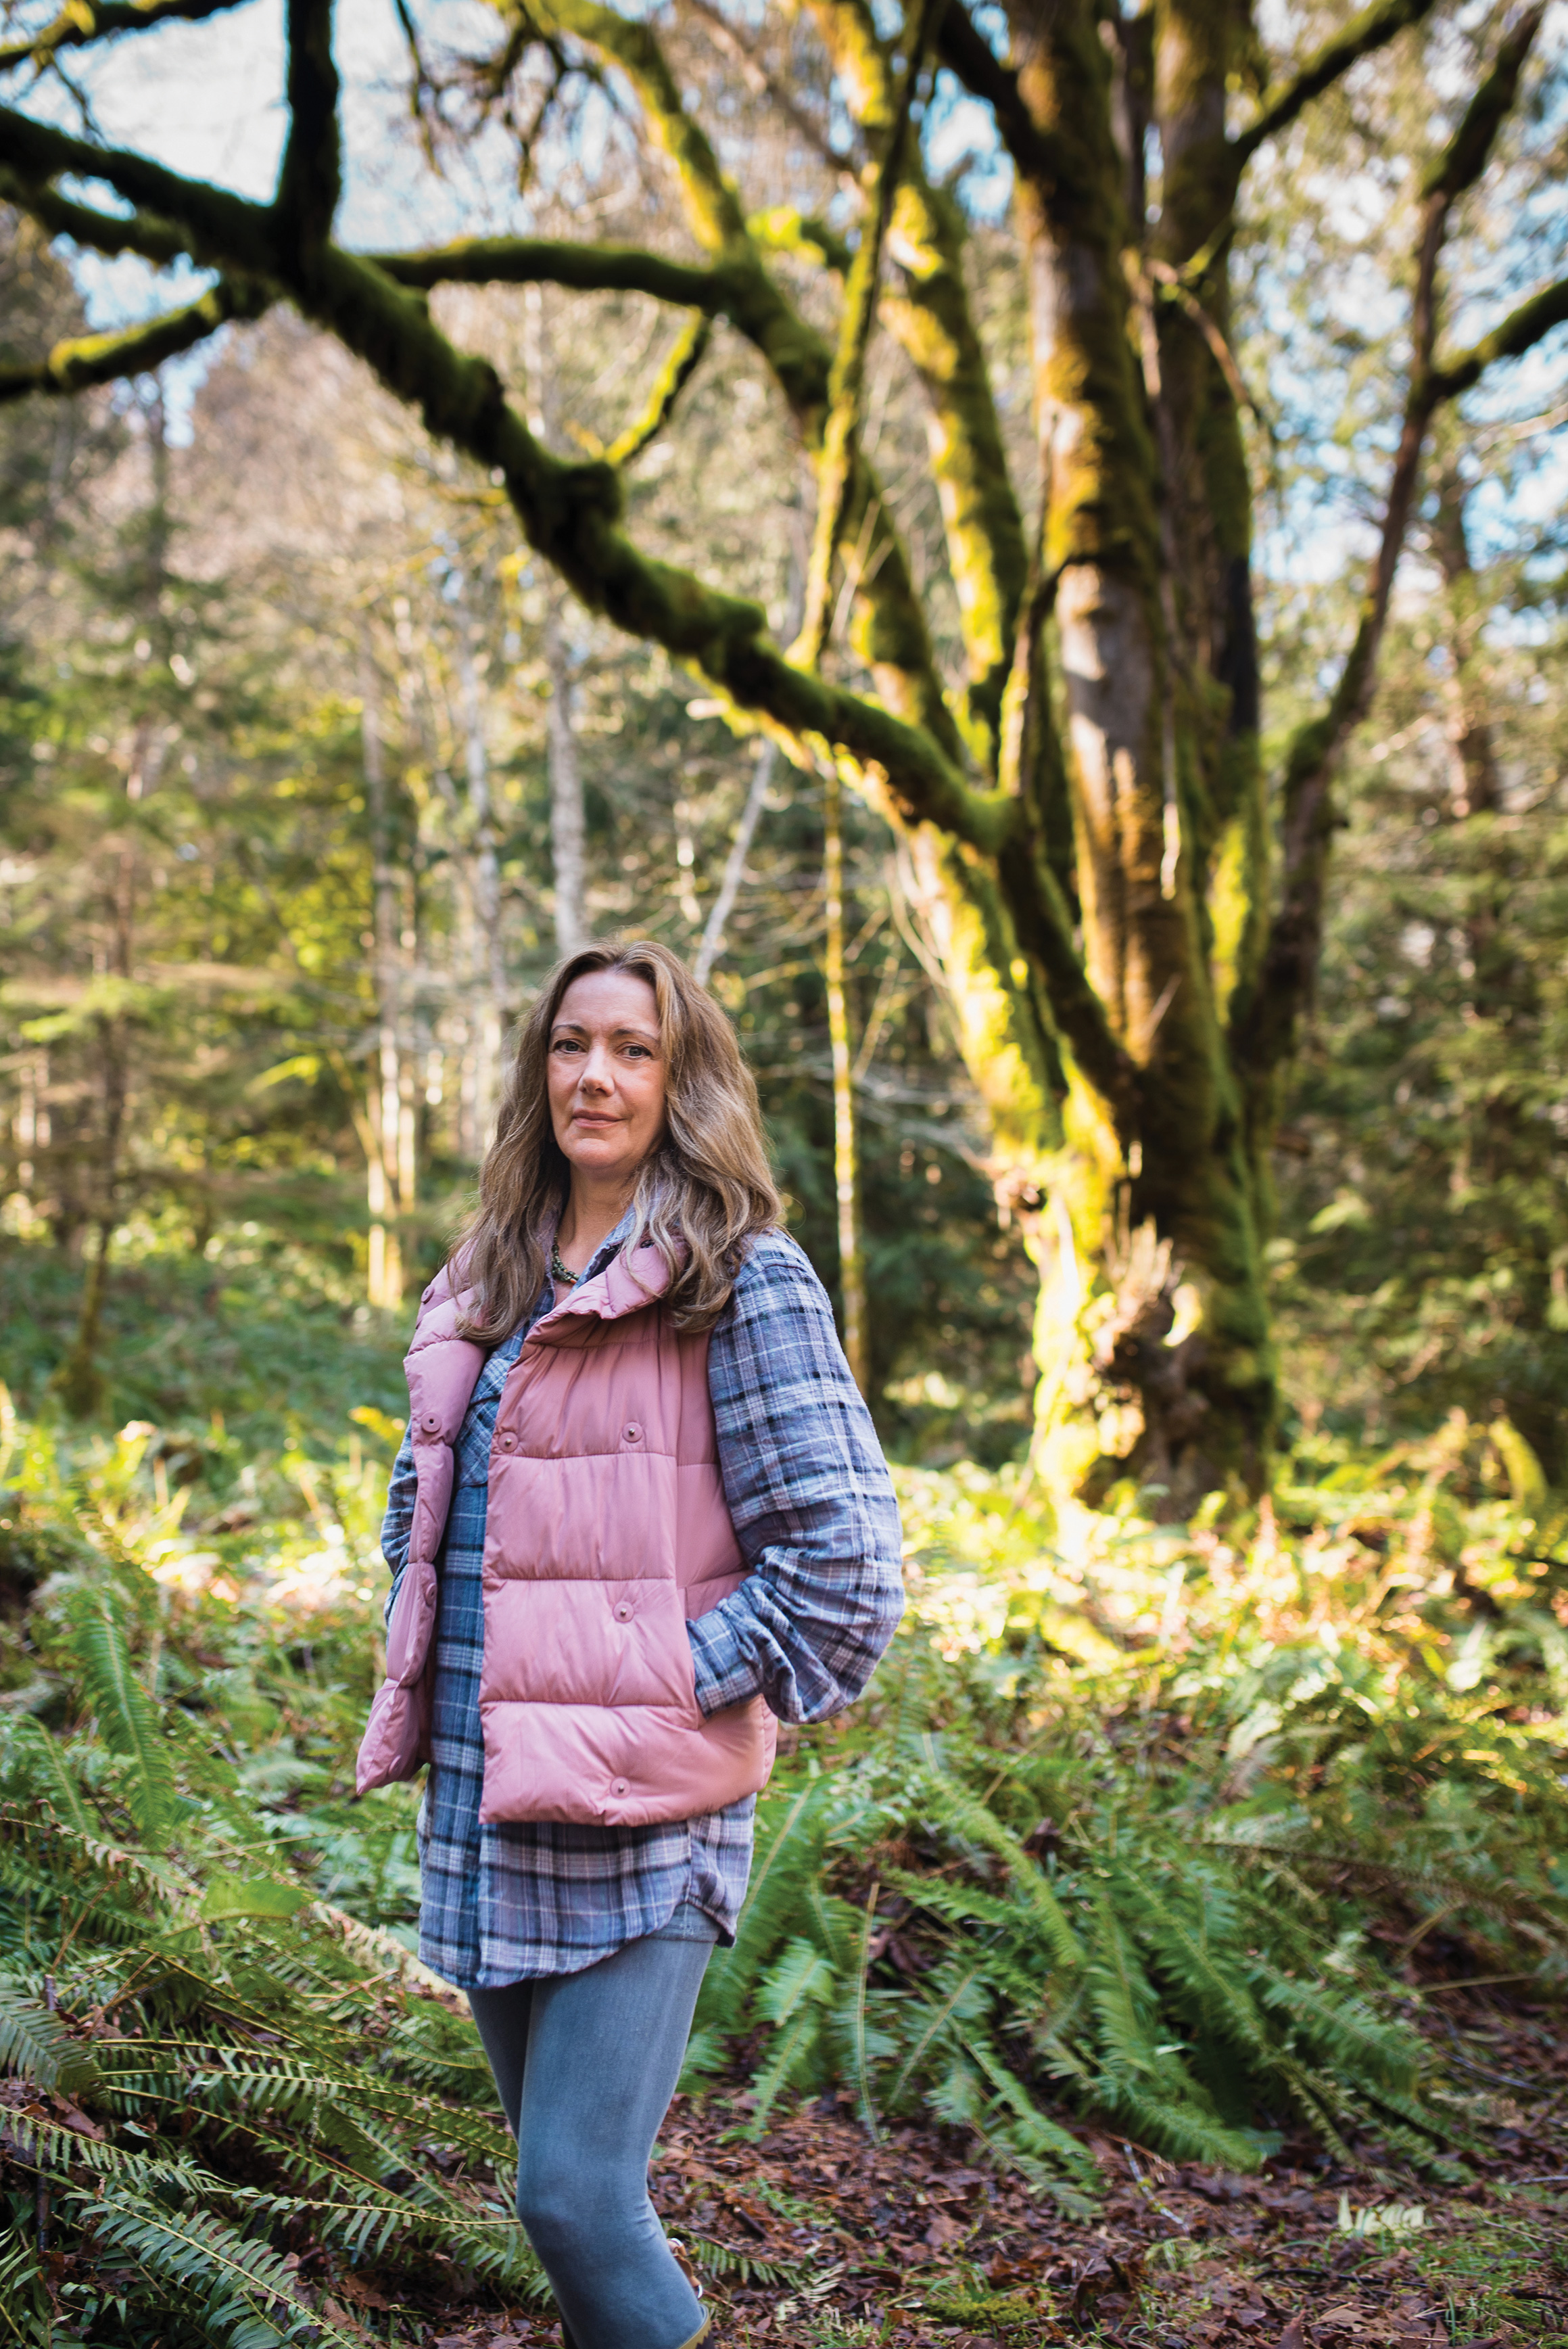 Dana Livingstone, on Vancouver Island, believes the MAID law needs to change. Photo by Pebble & Pine Photography.